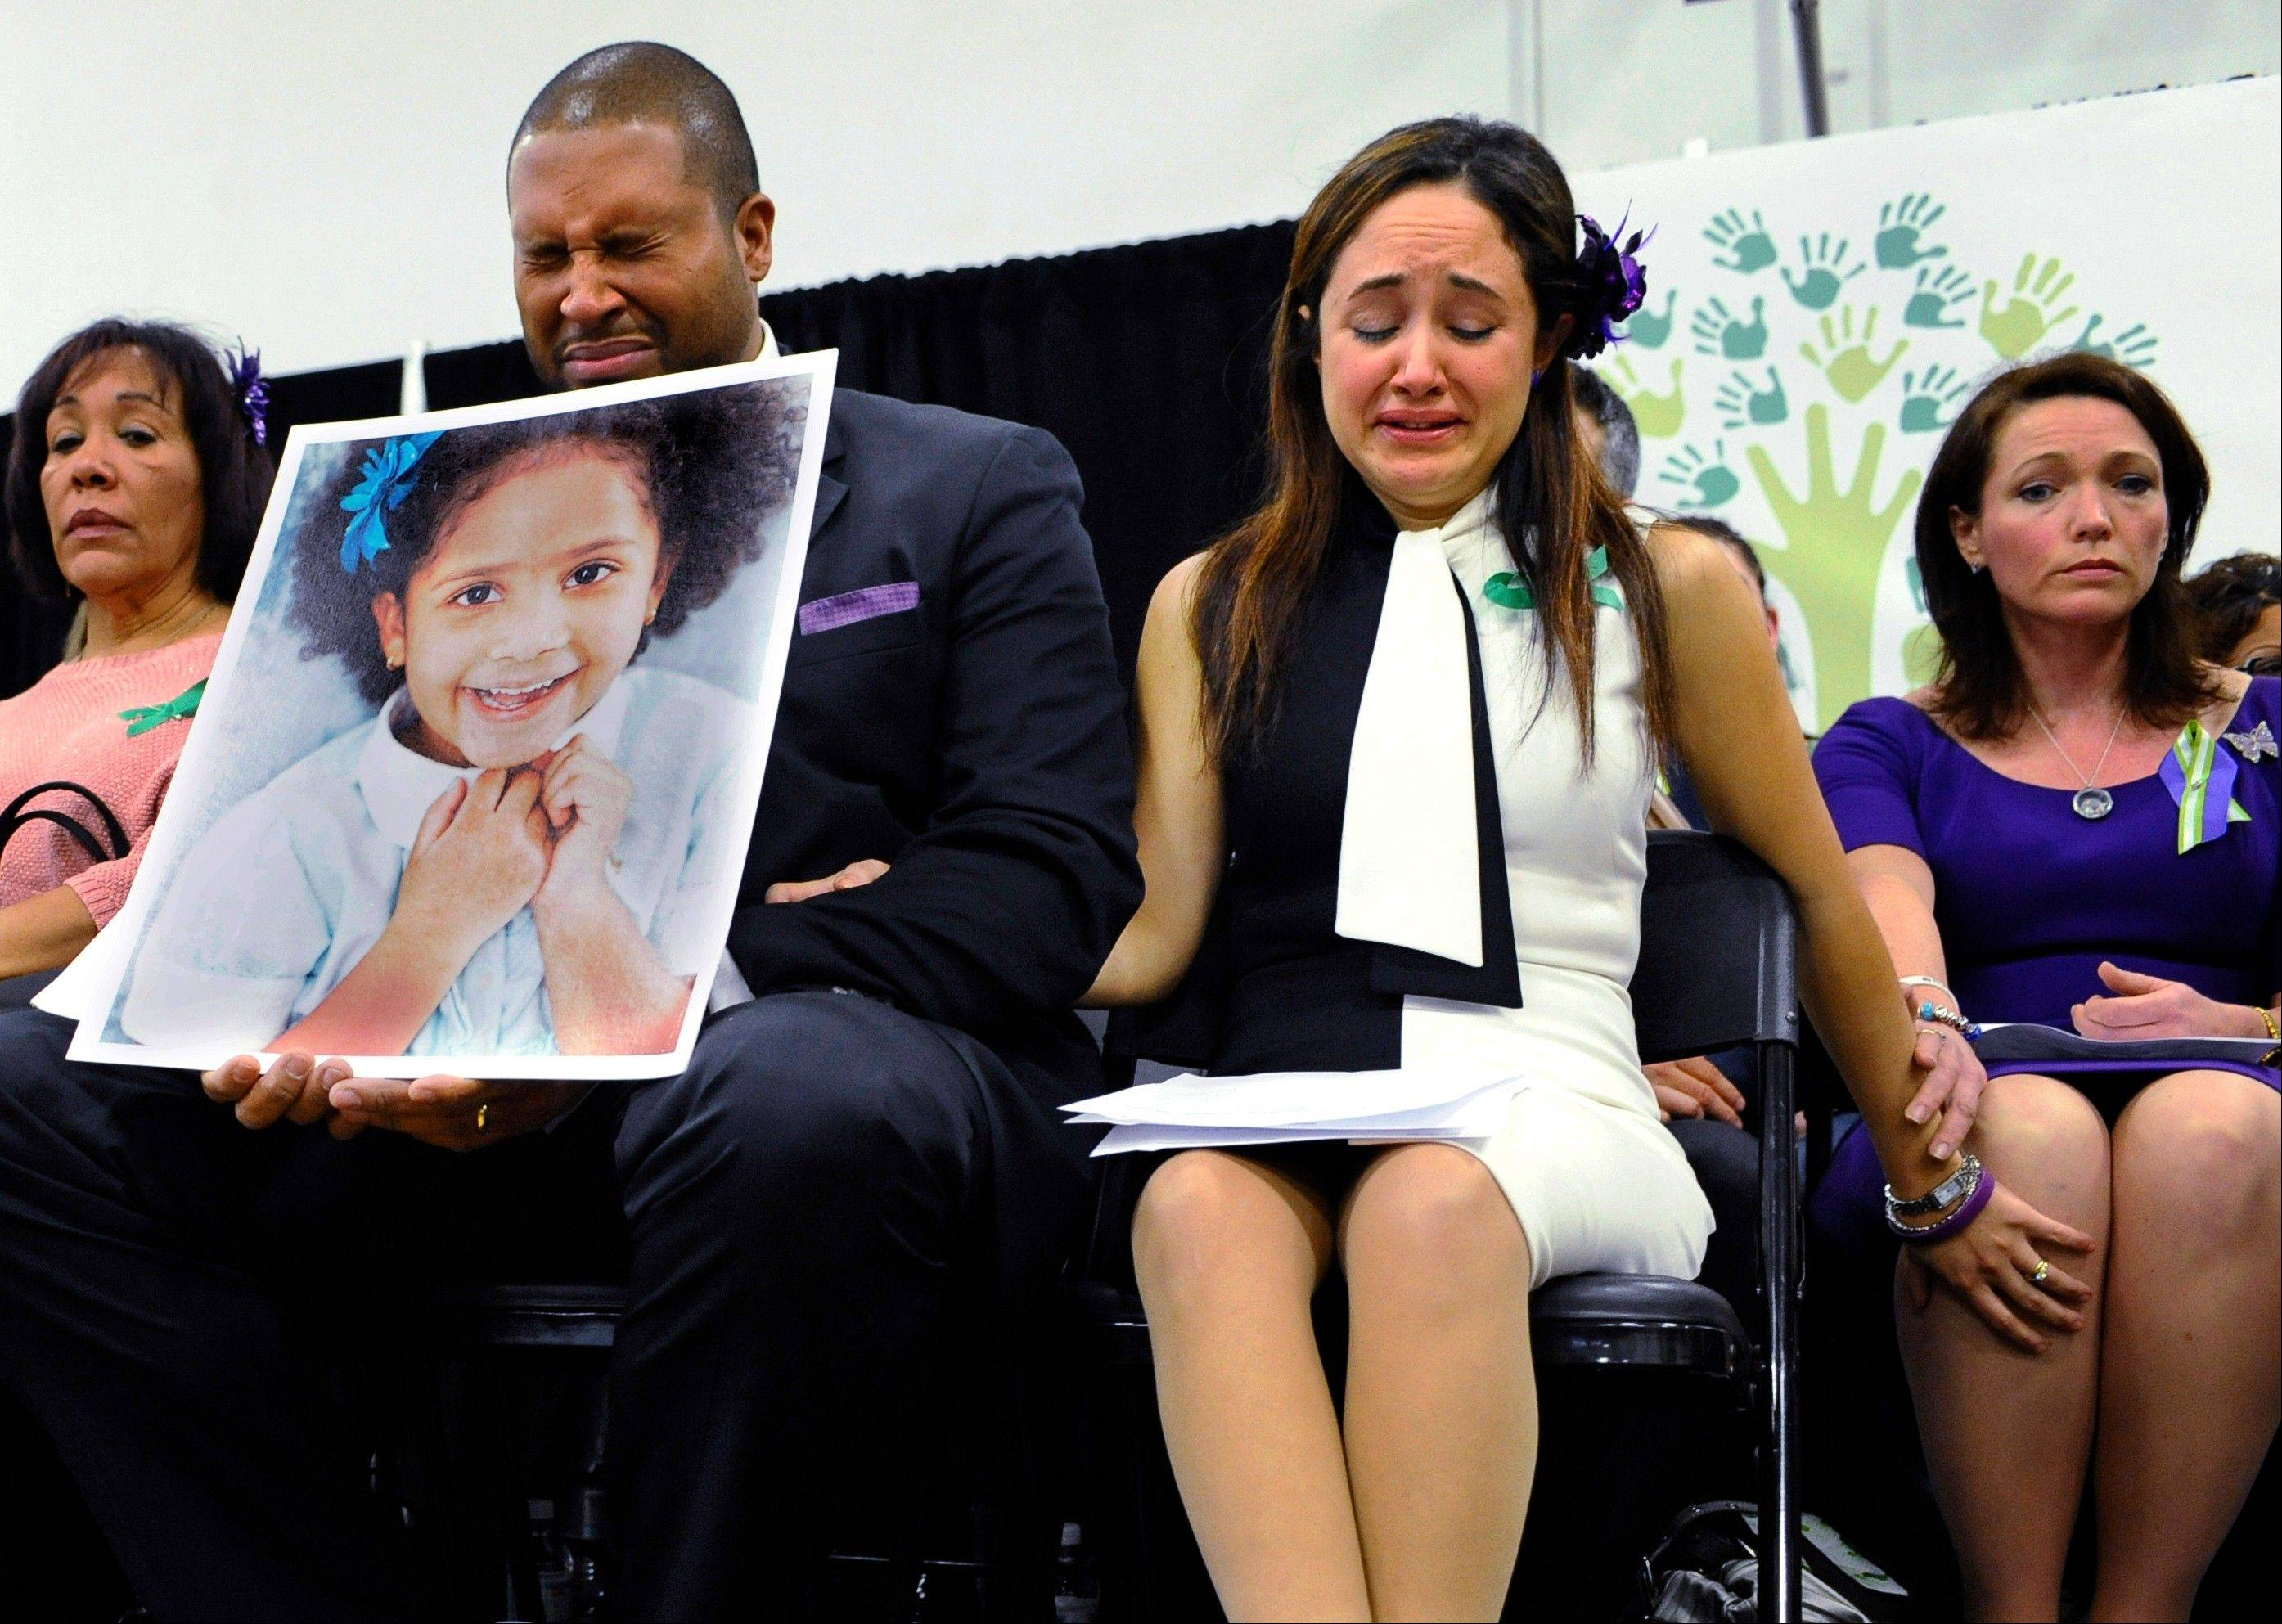 Jimmy Greene, foreground left, Nelba Marquez-Greene, center, parents of Sandy Hook Elementary School shooting victim Ana Marquez-Greene, and Nicole Hockley, right, mother of victim Dylan Hockley, were among Sandy Hook parents who joined a grassroots initiative to support solutions for a safer community.